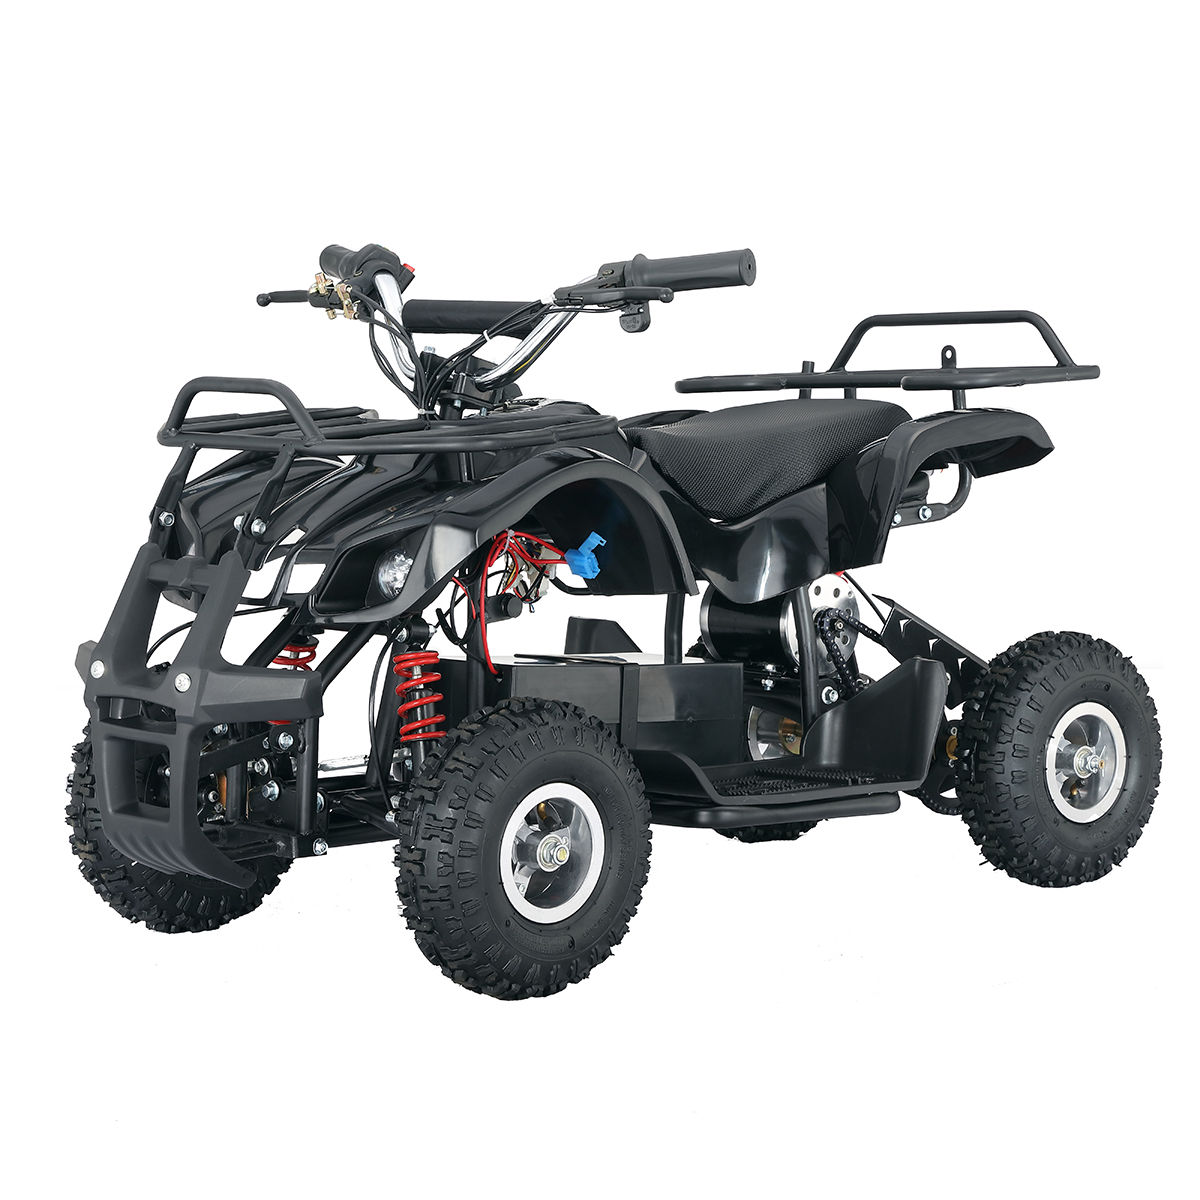 Costway Electric Ride On ATV Quad 36V Battery Operated Ki...